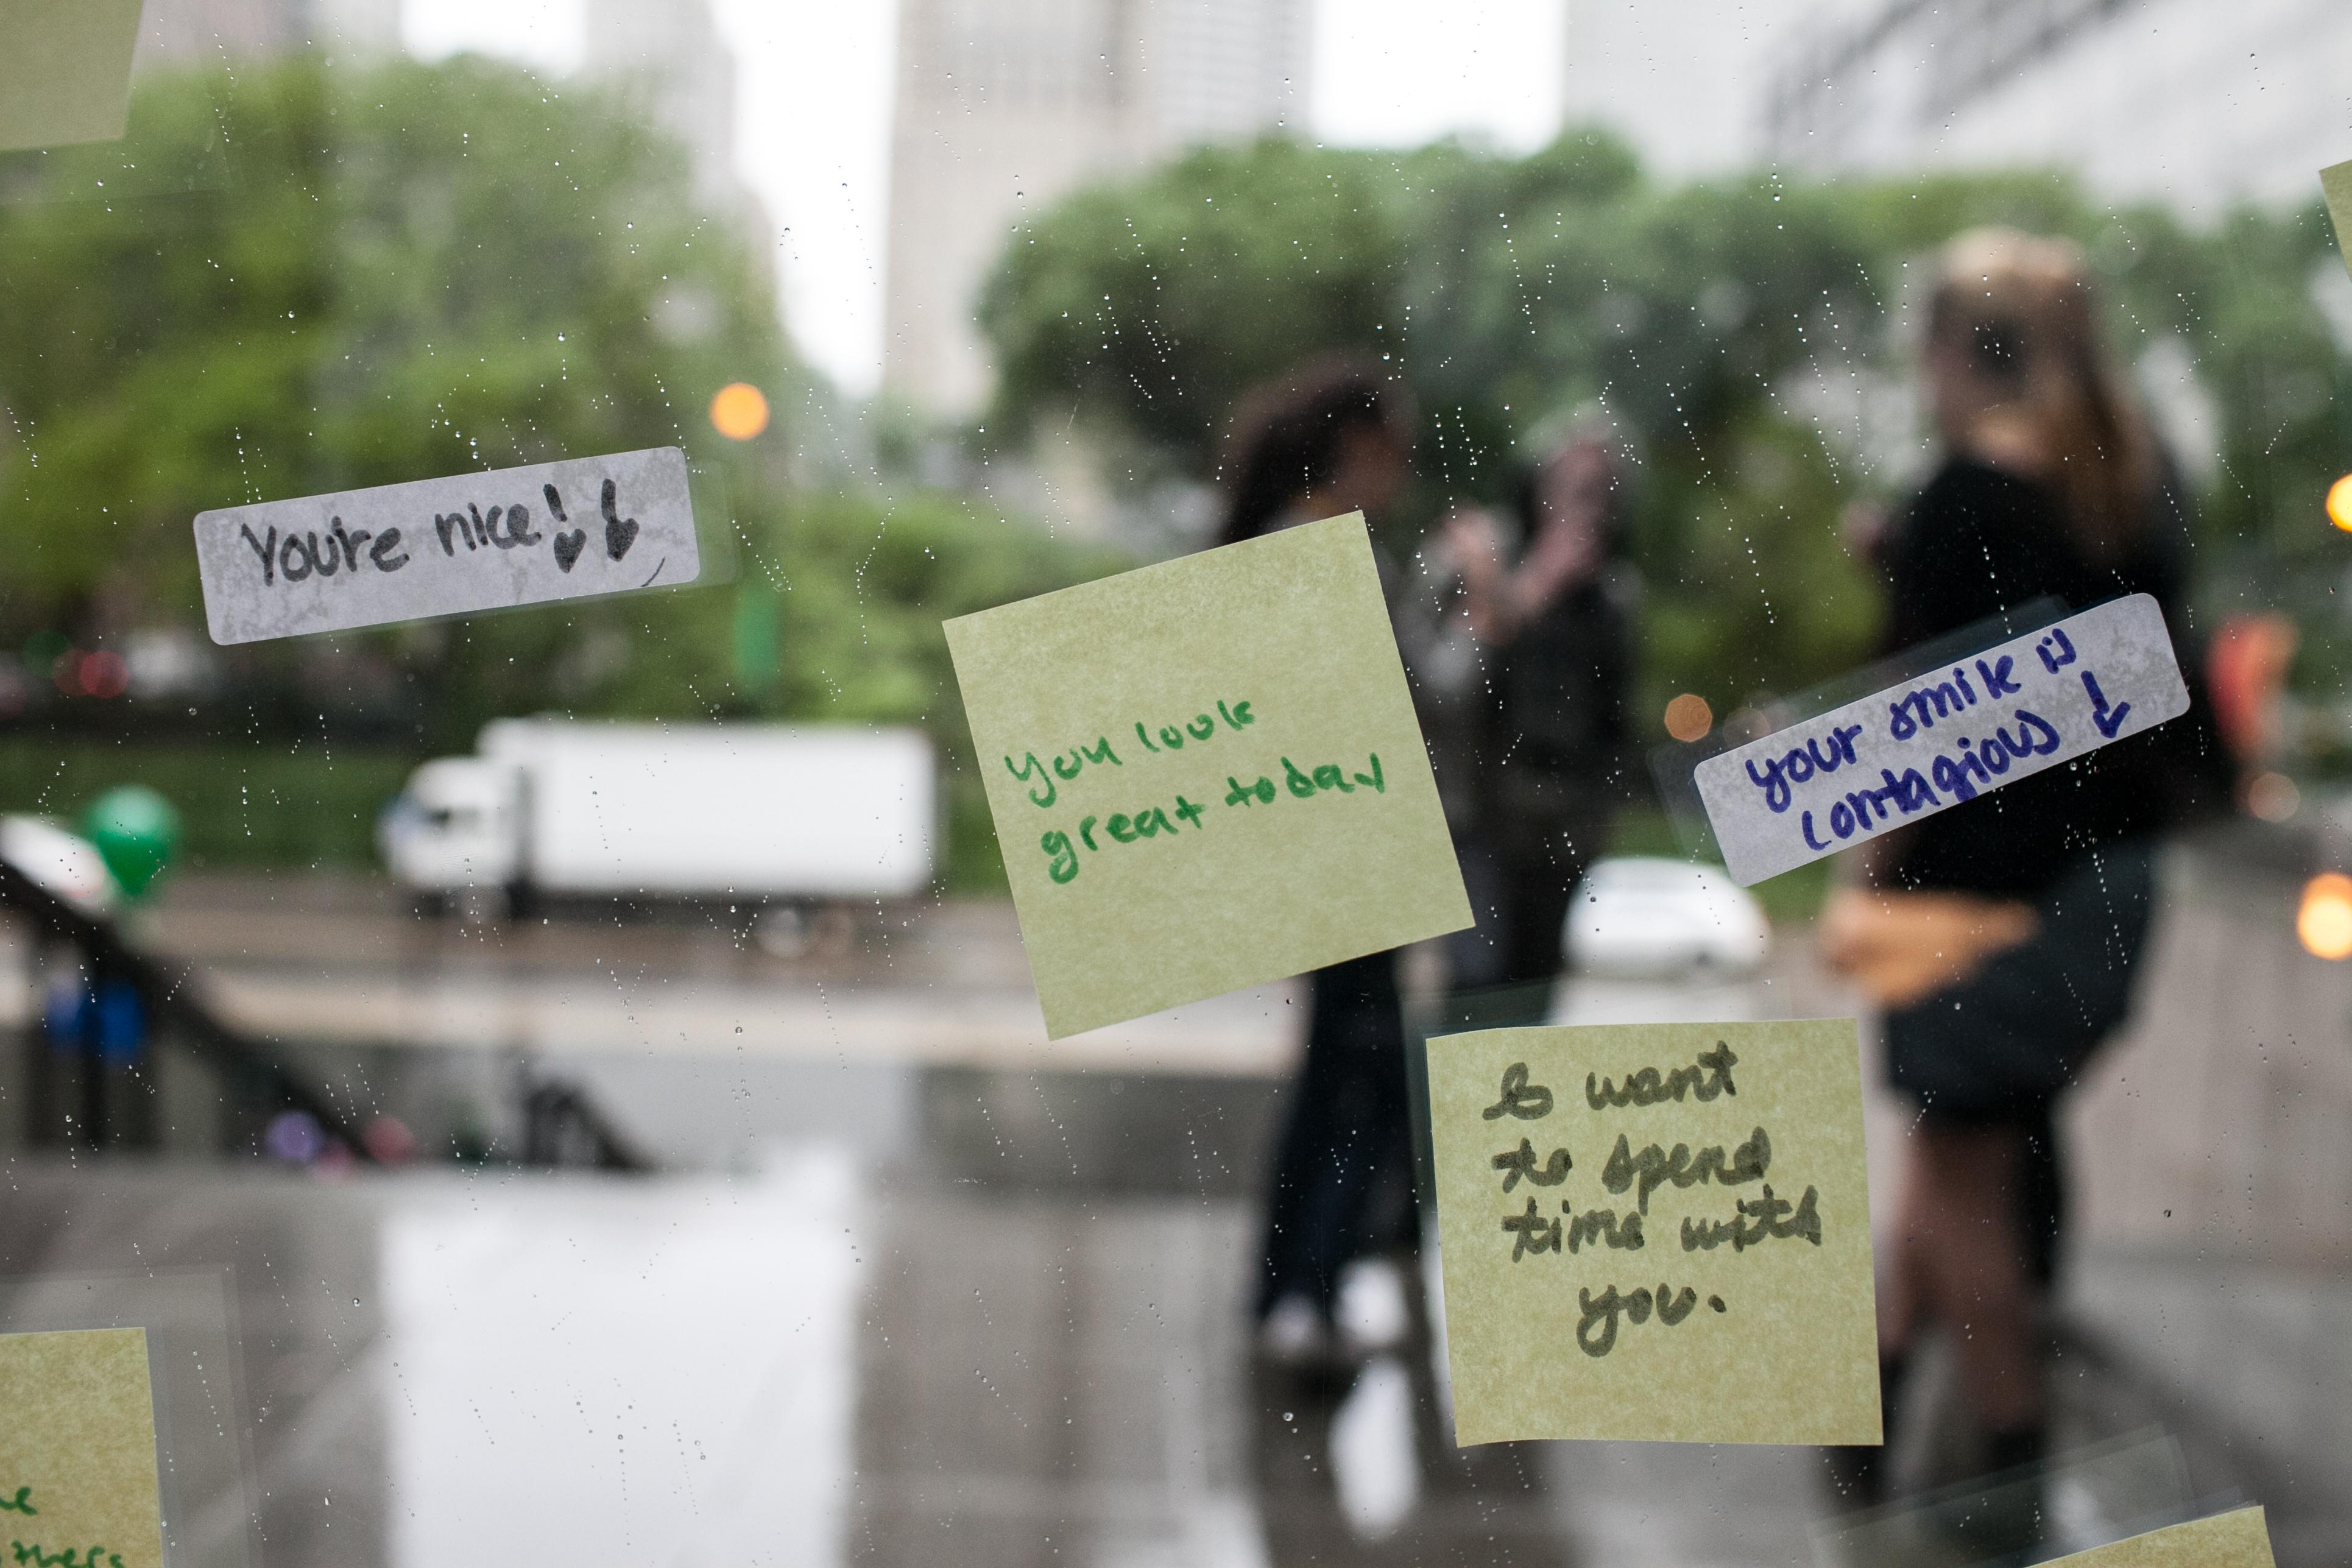 Post-It notes and stickers with complimentary phrases are stuck to a window looking out at people on the MCA's front staircase.